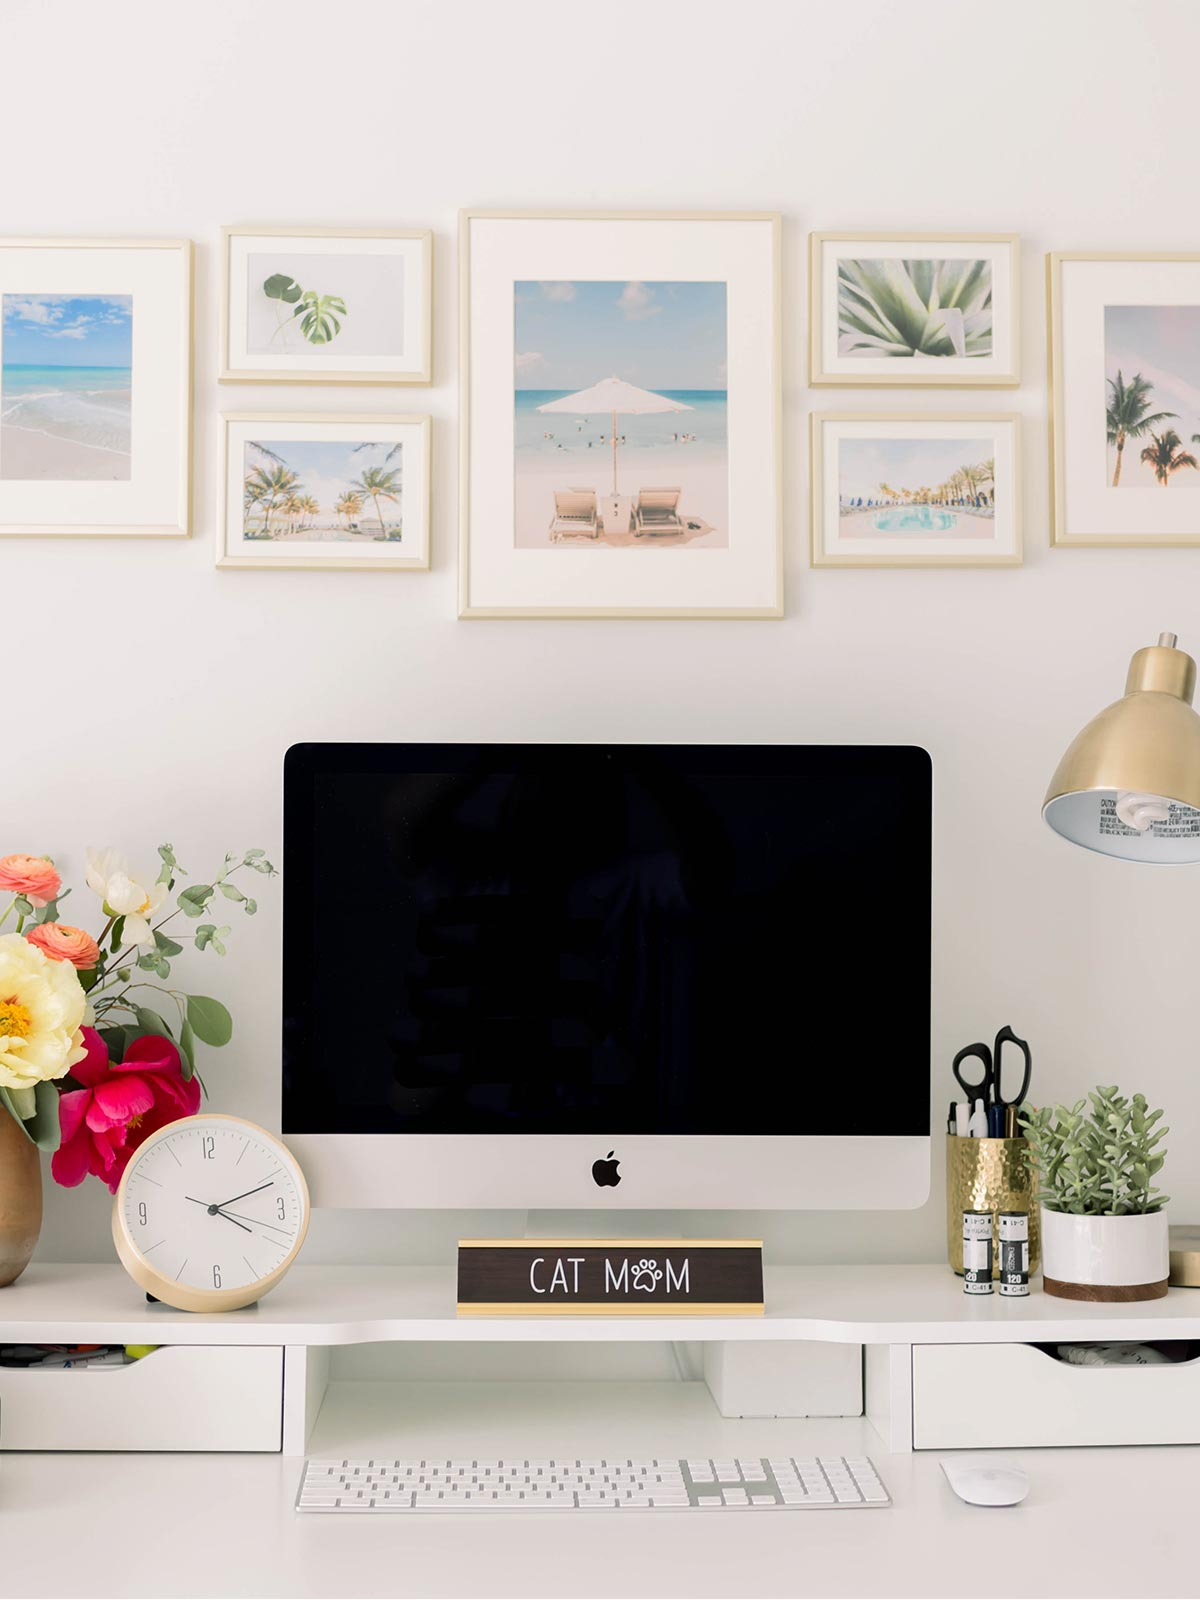 Gallery wall of frames above a desk with a computer, lamp, and bright bouquet.